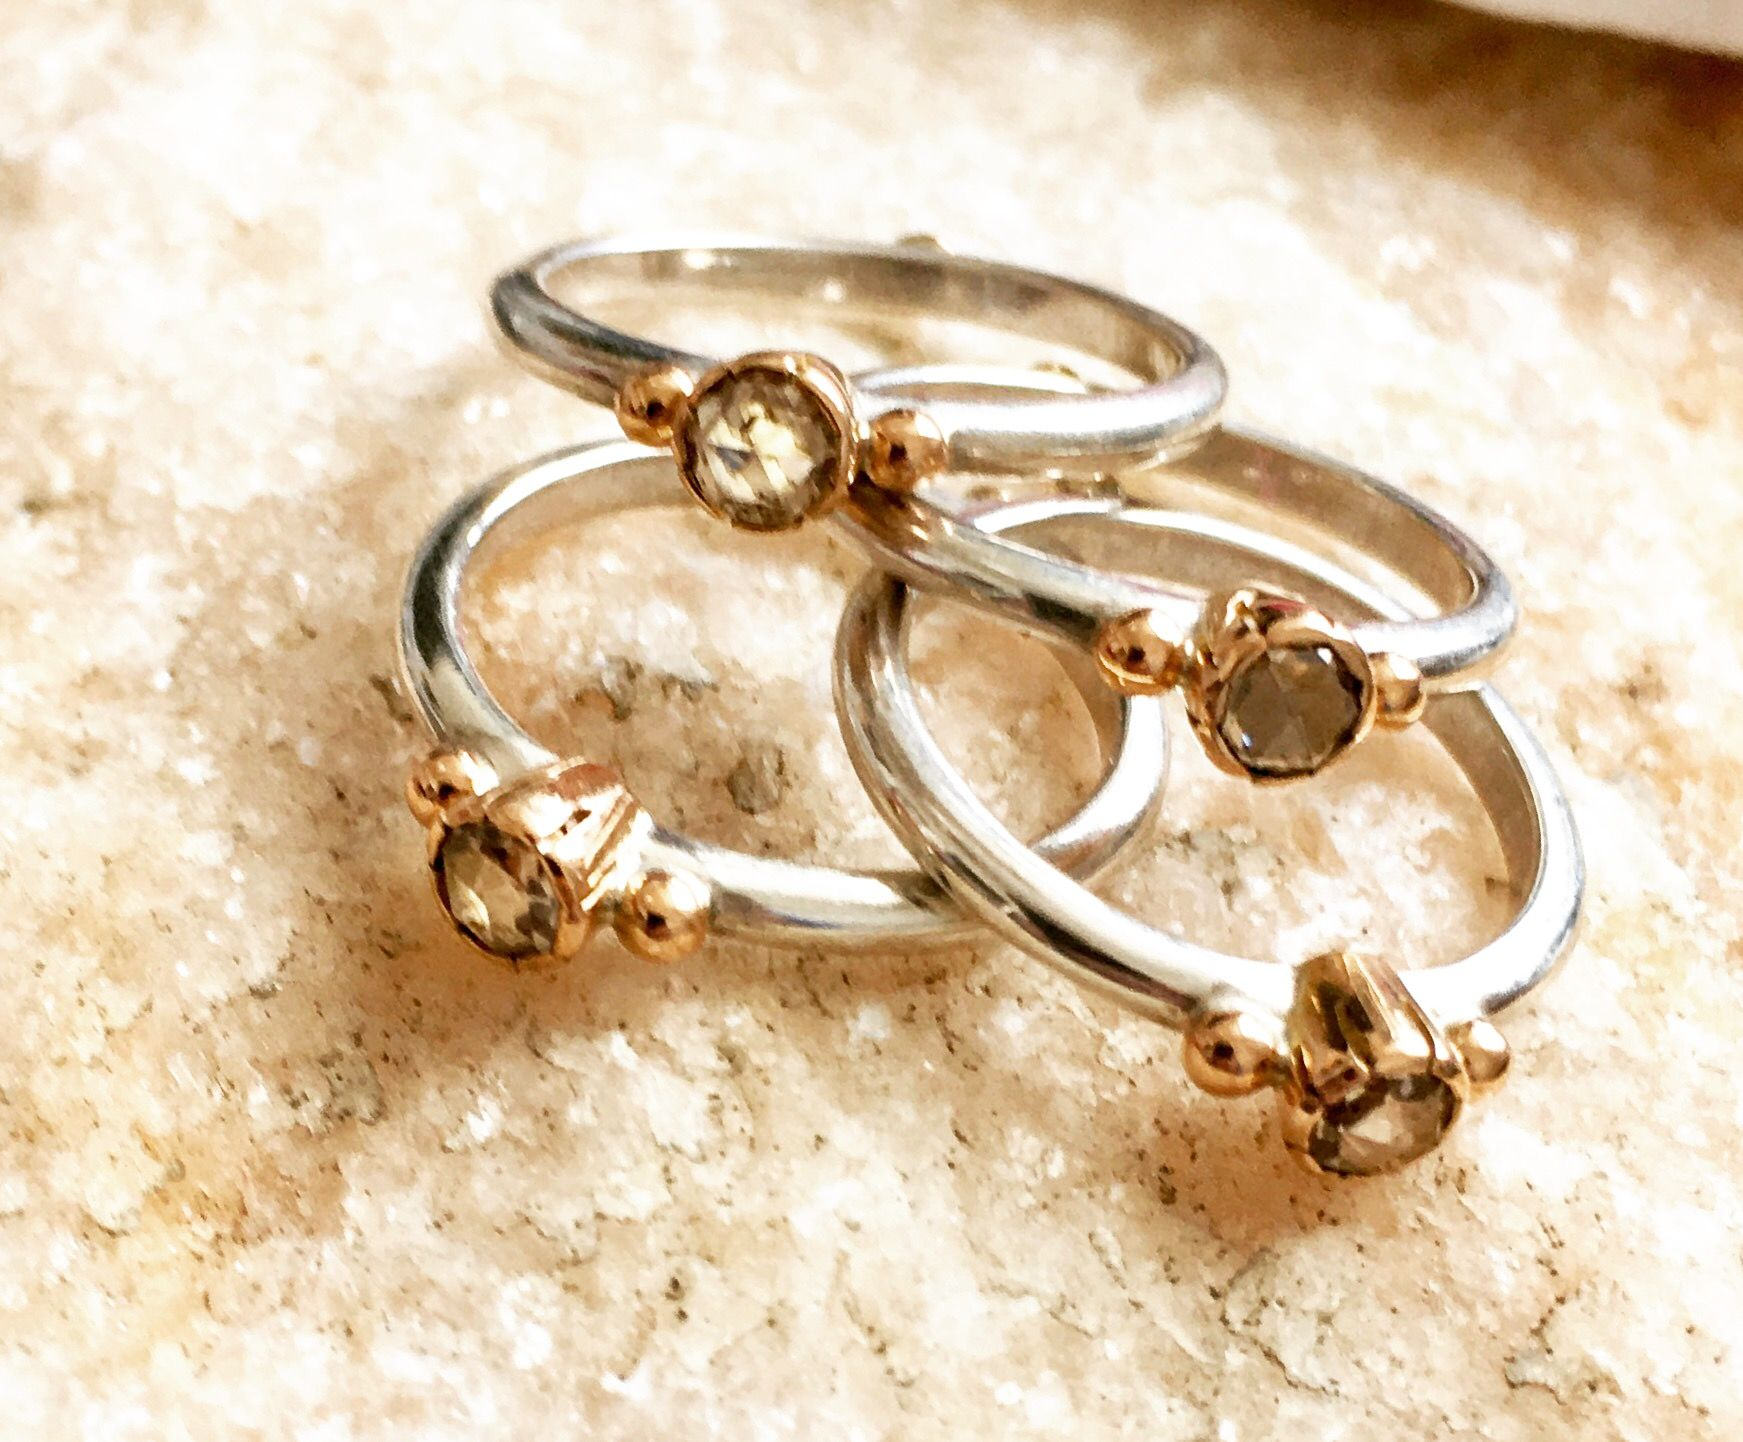 Rings of combined silver and gold set with besutiful large brown